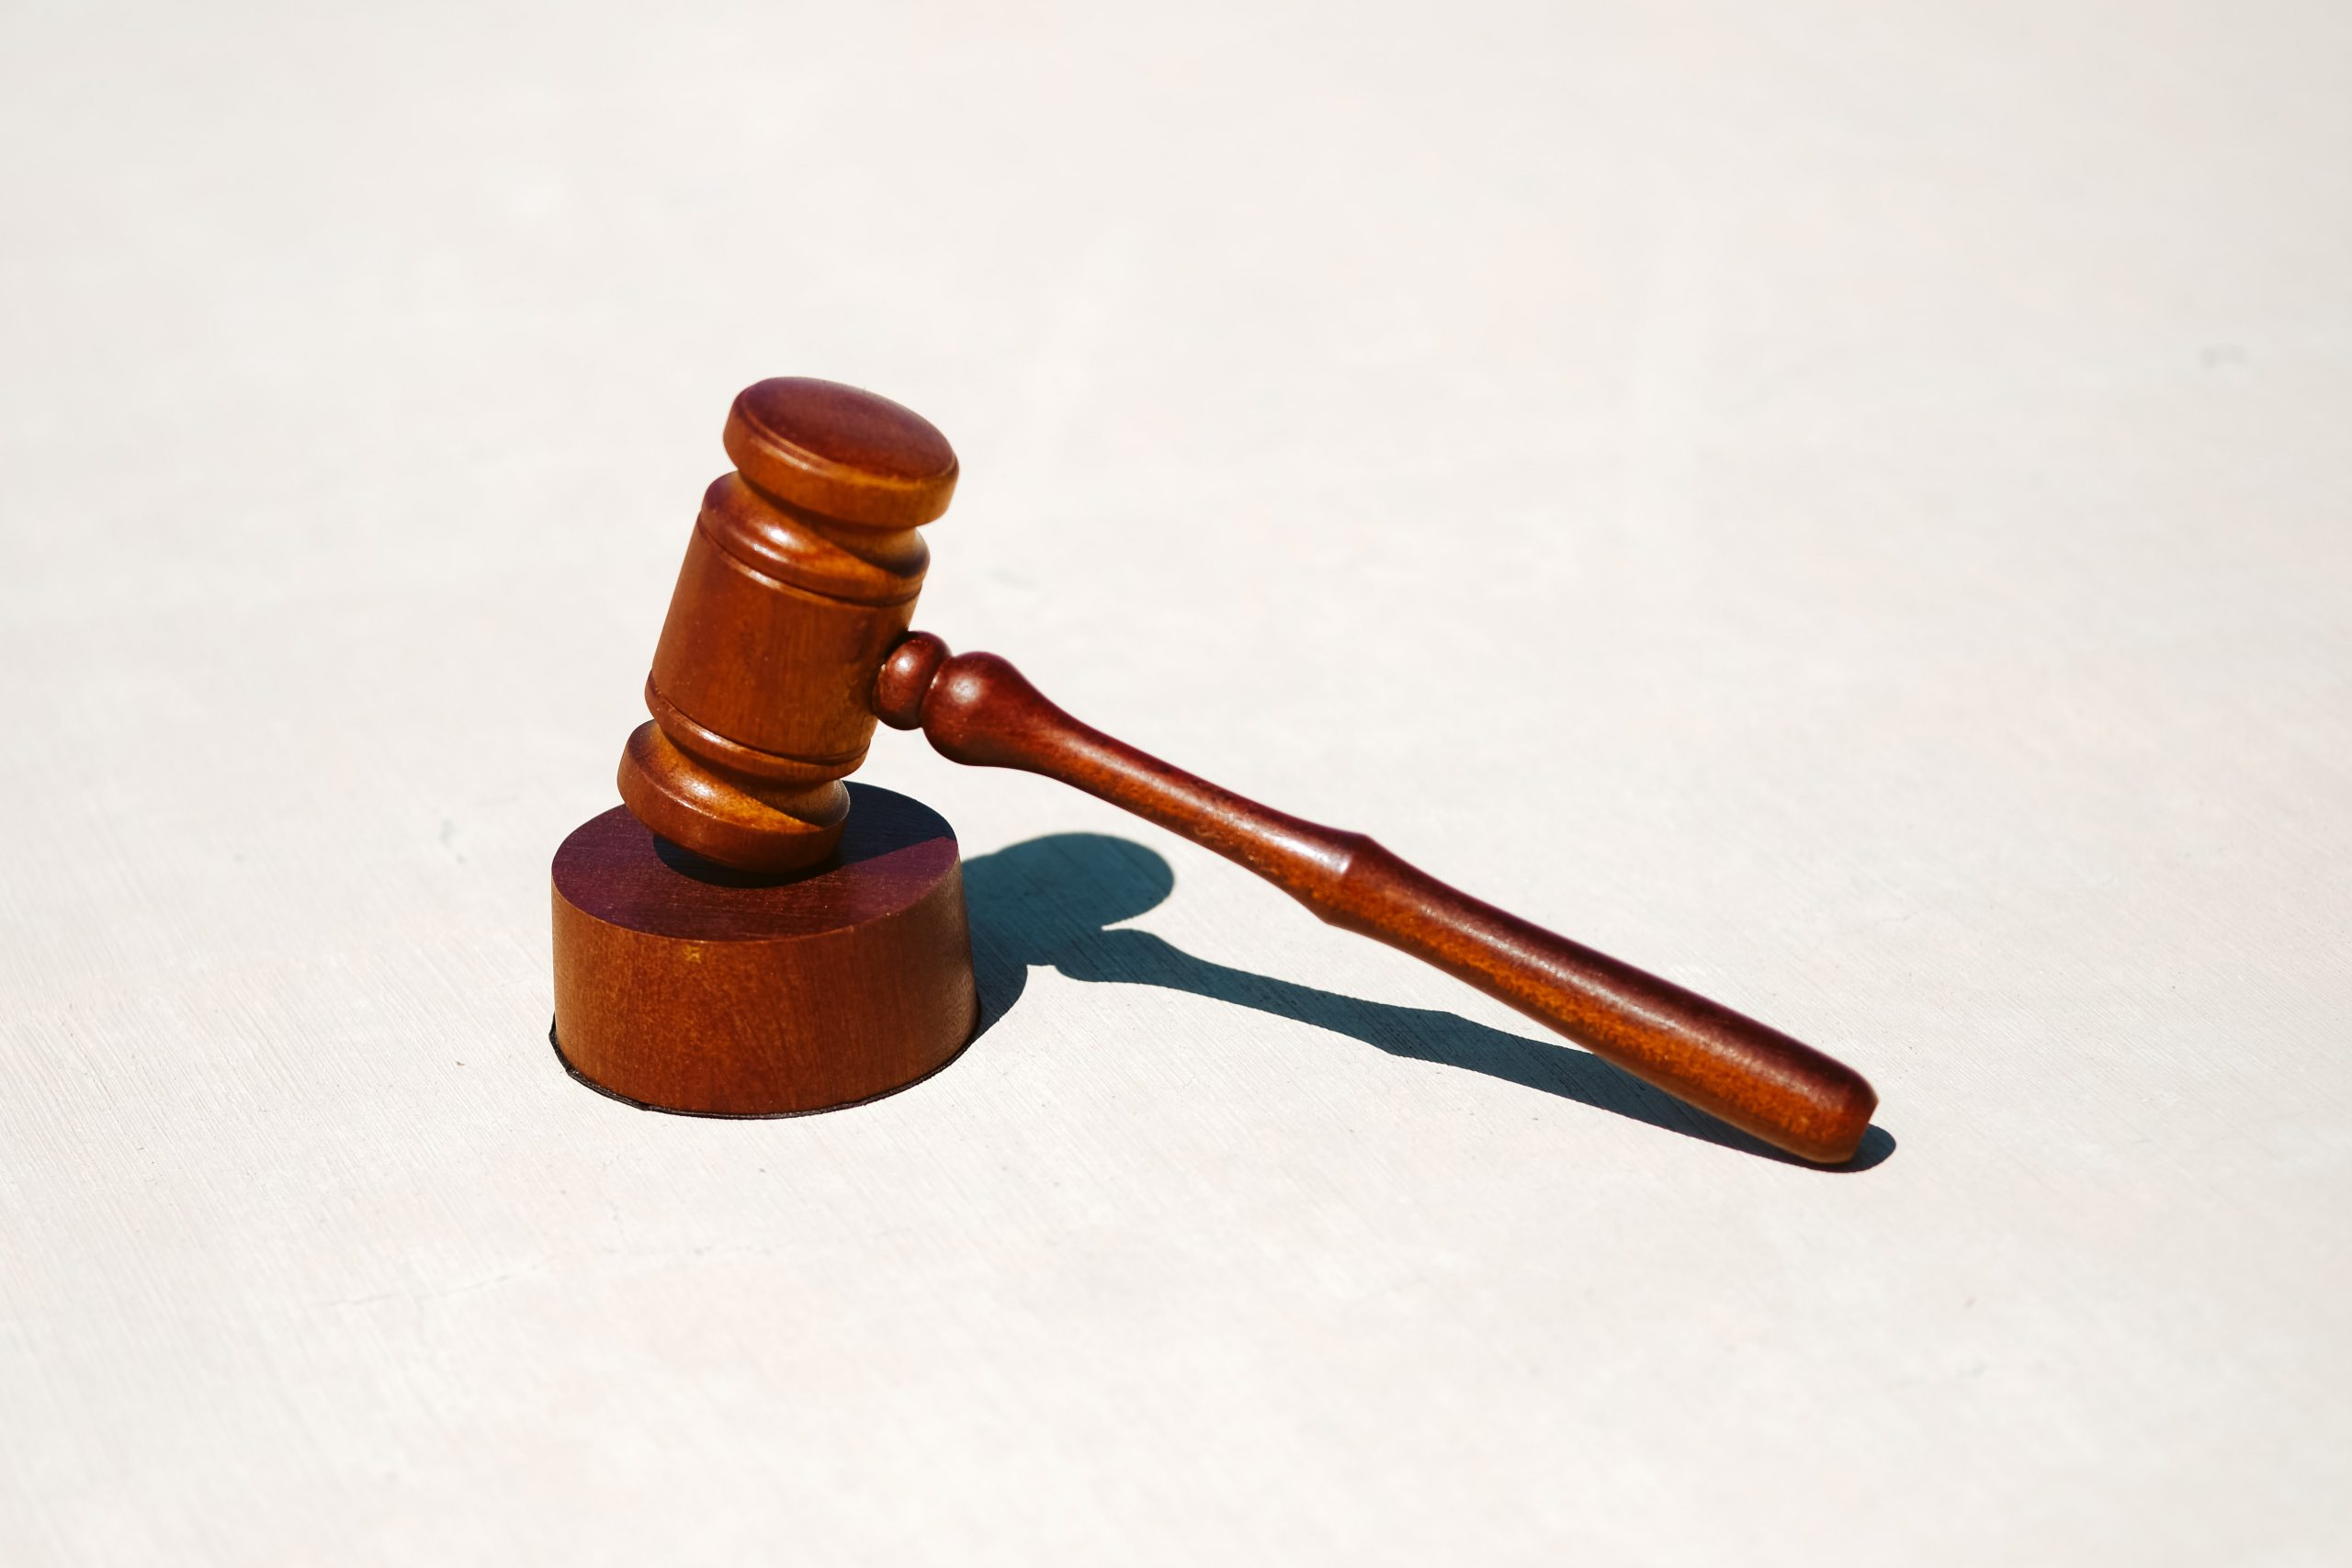 gavel placed upright